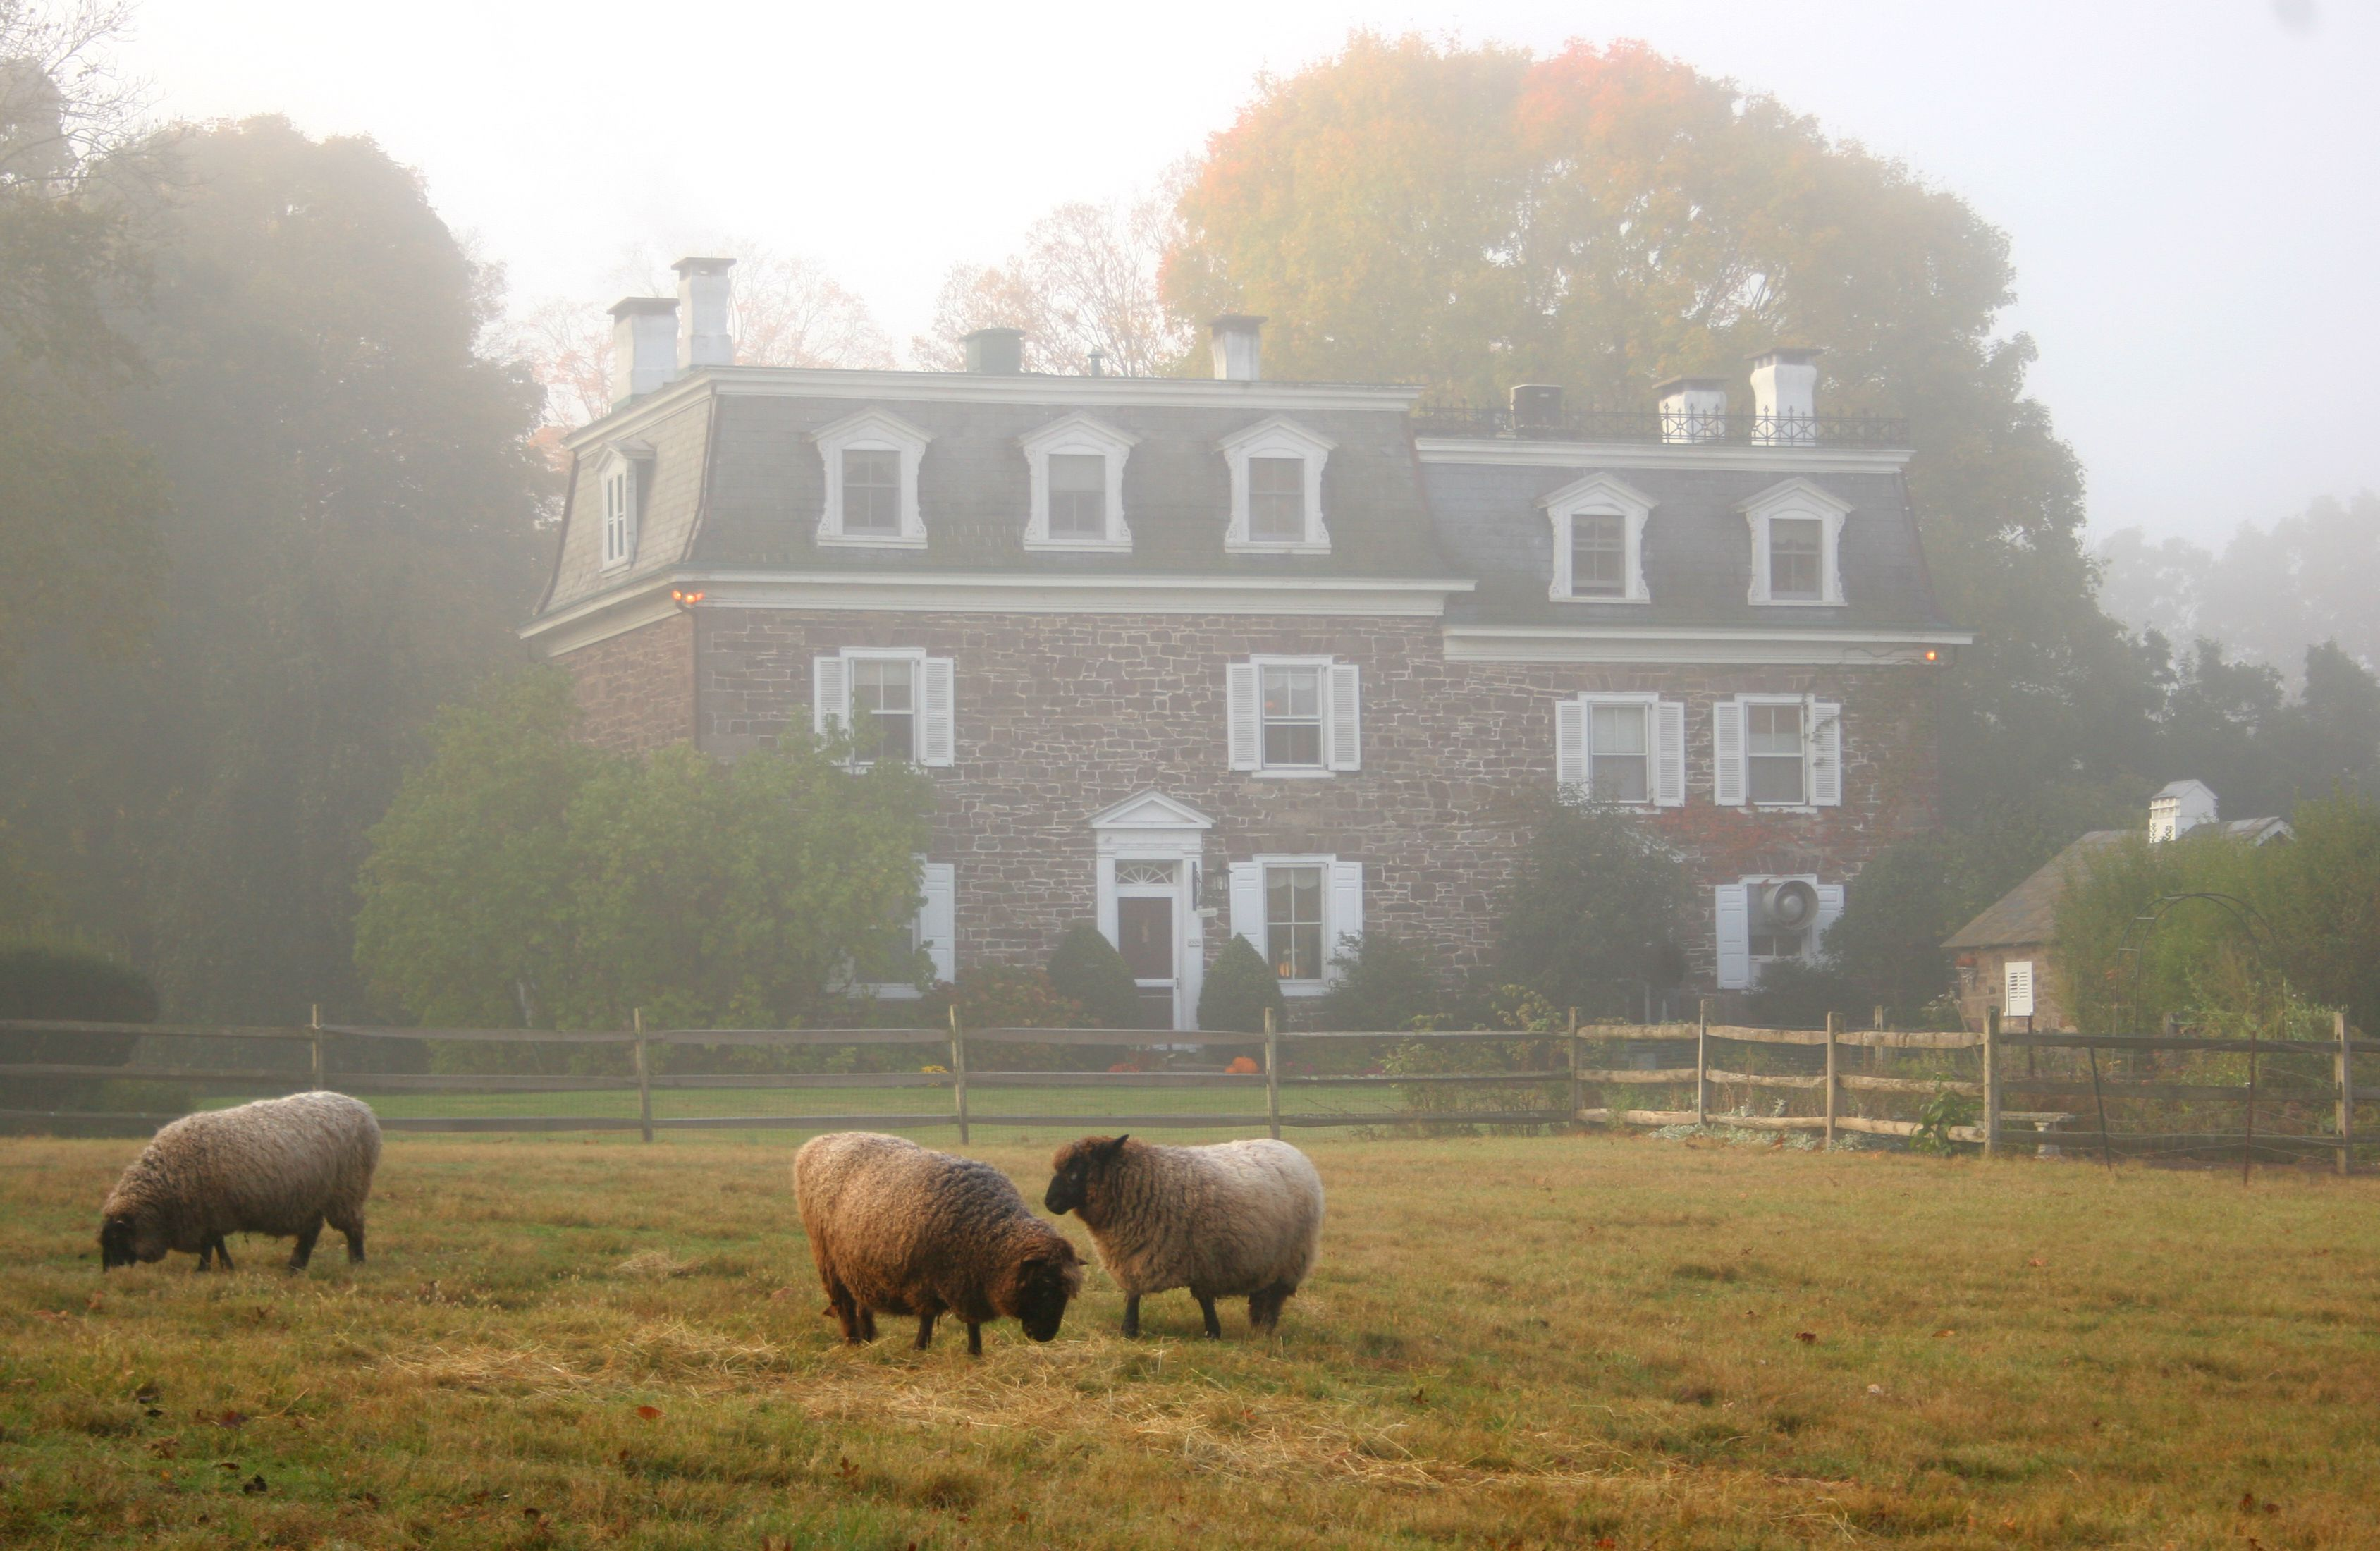 A hazy morning view of the Woolverton Inn. Located in